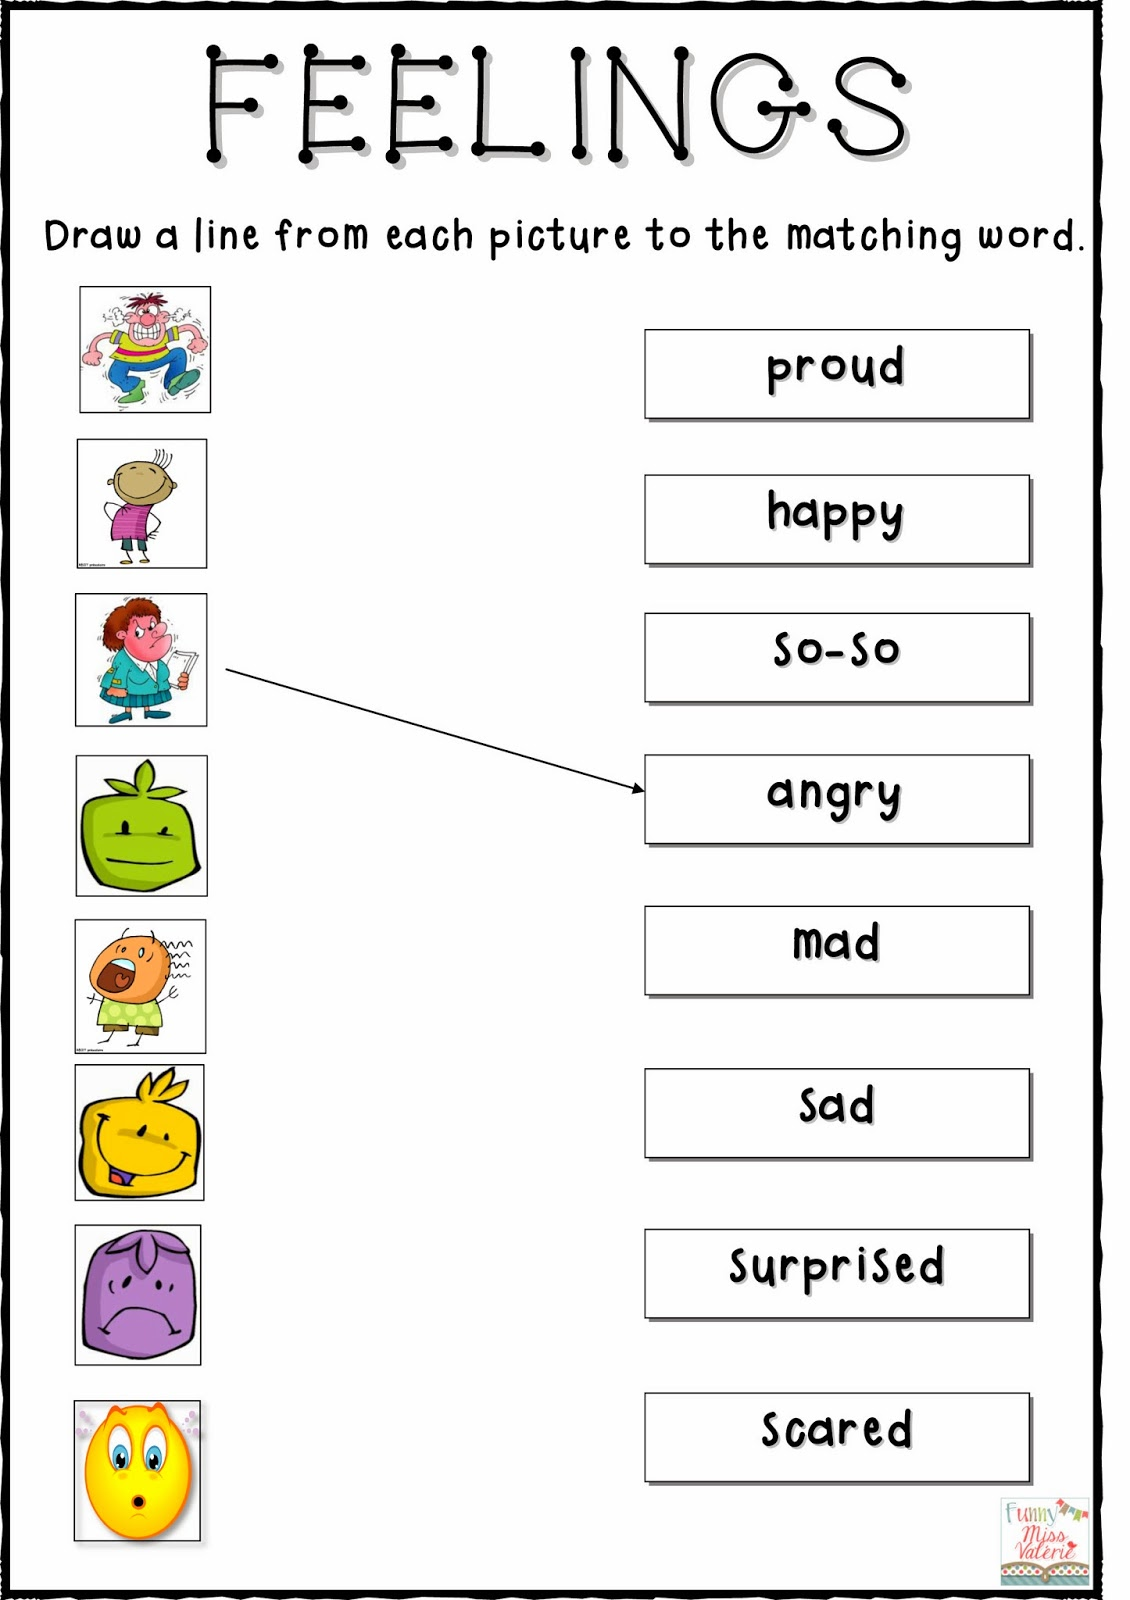 Collection Feelings Worksheet Photos - Studioxcess